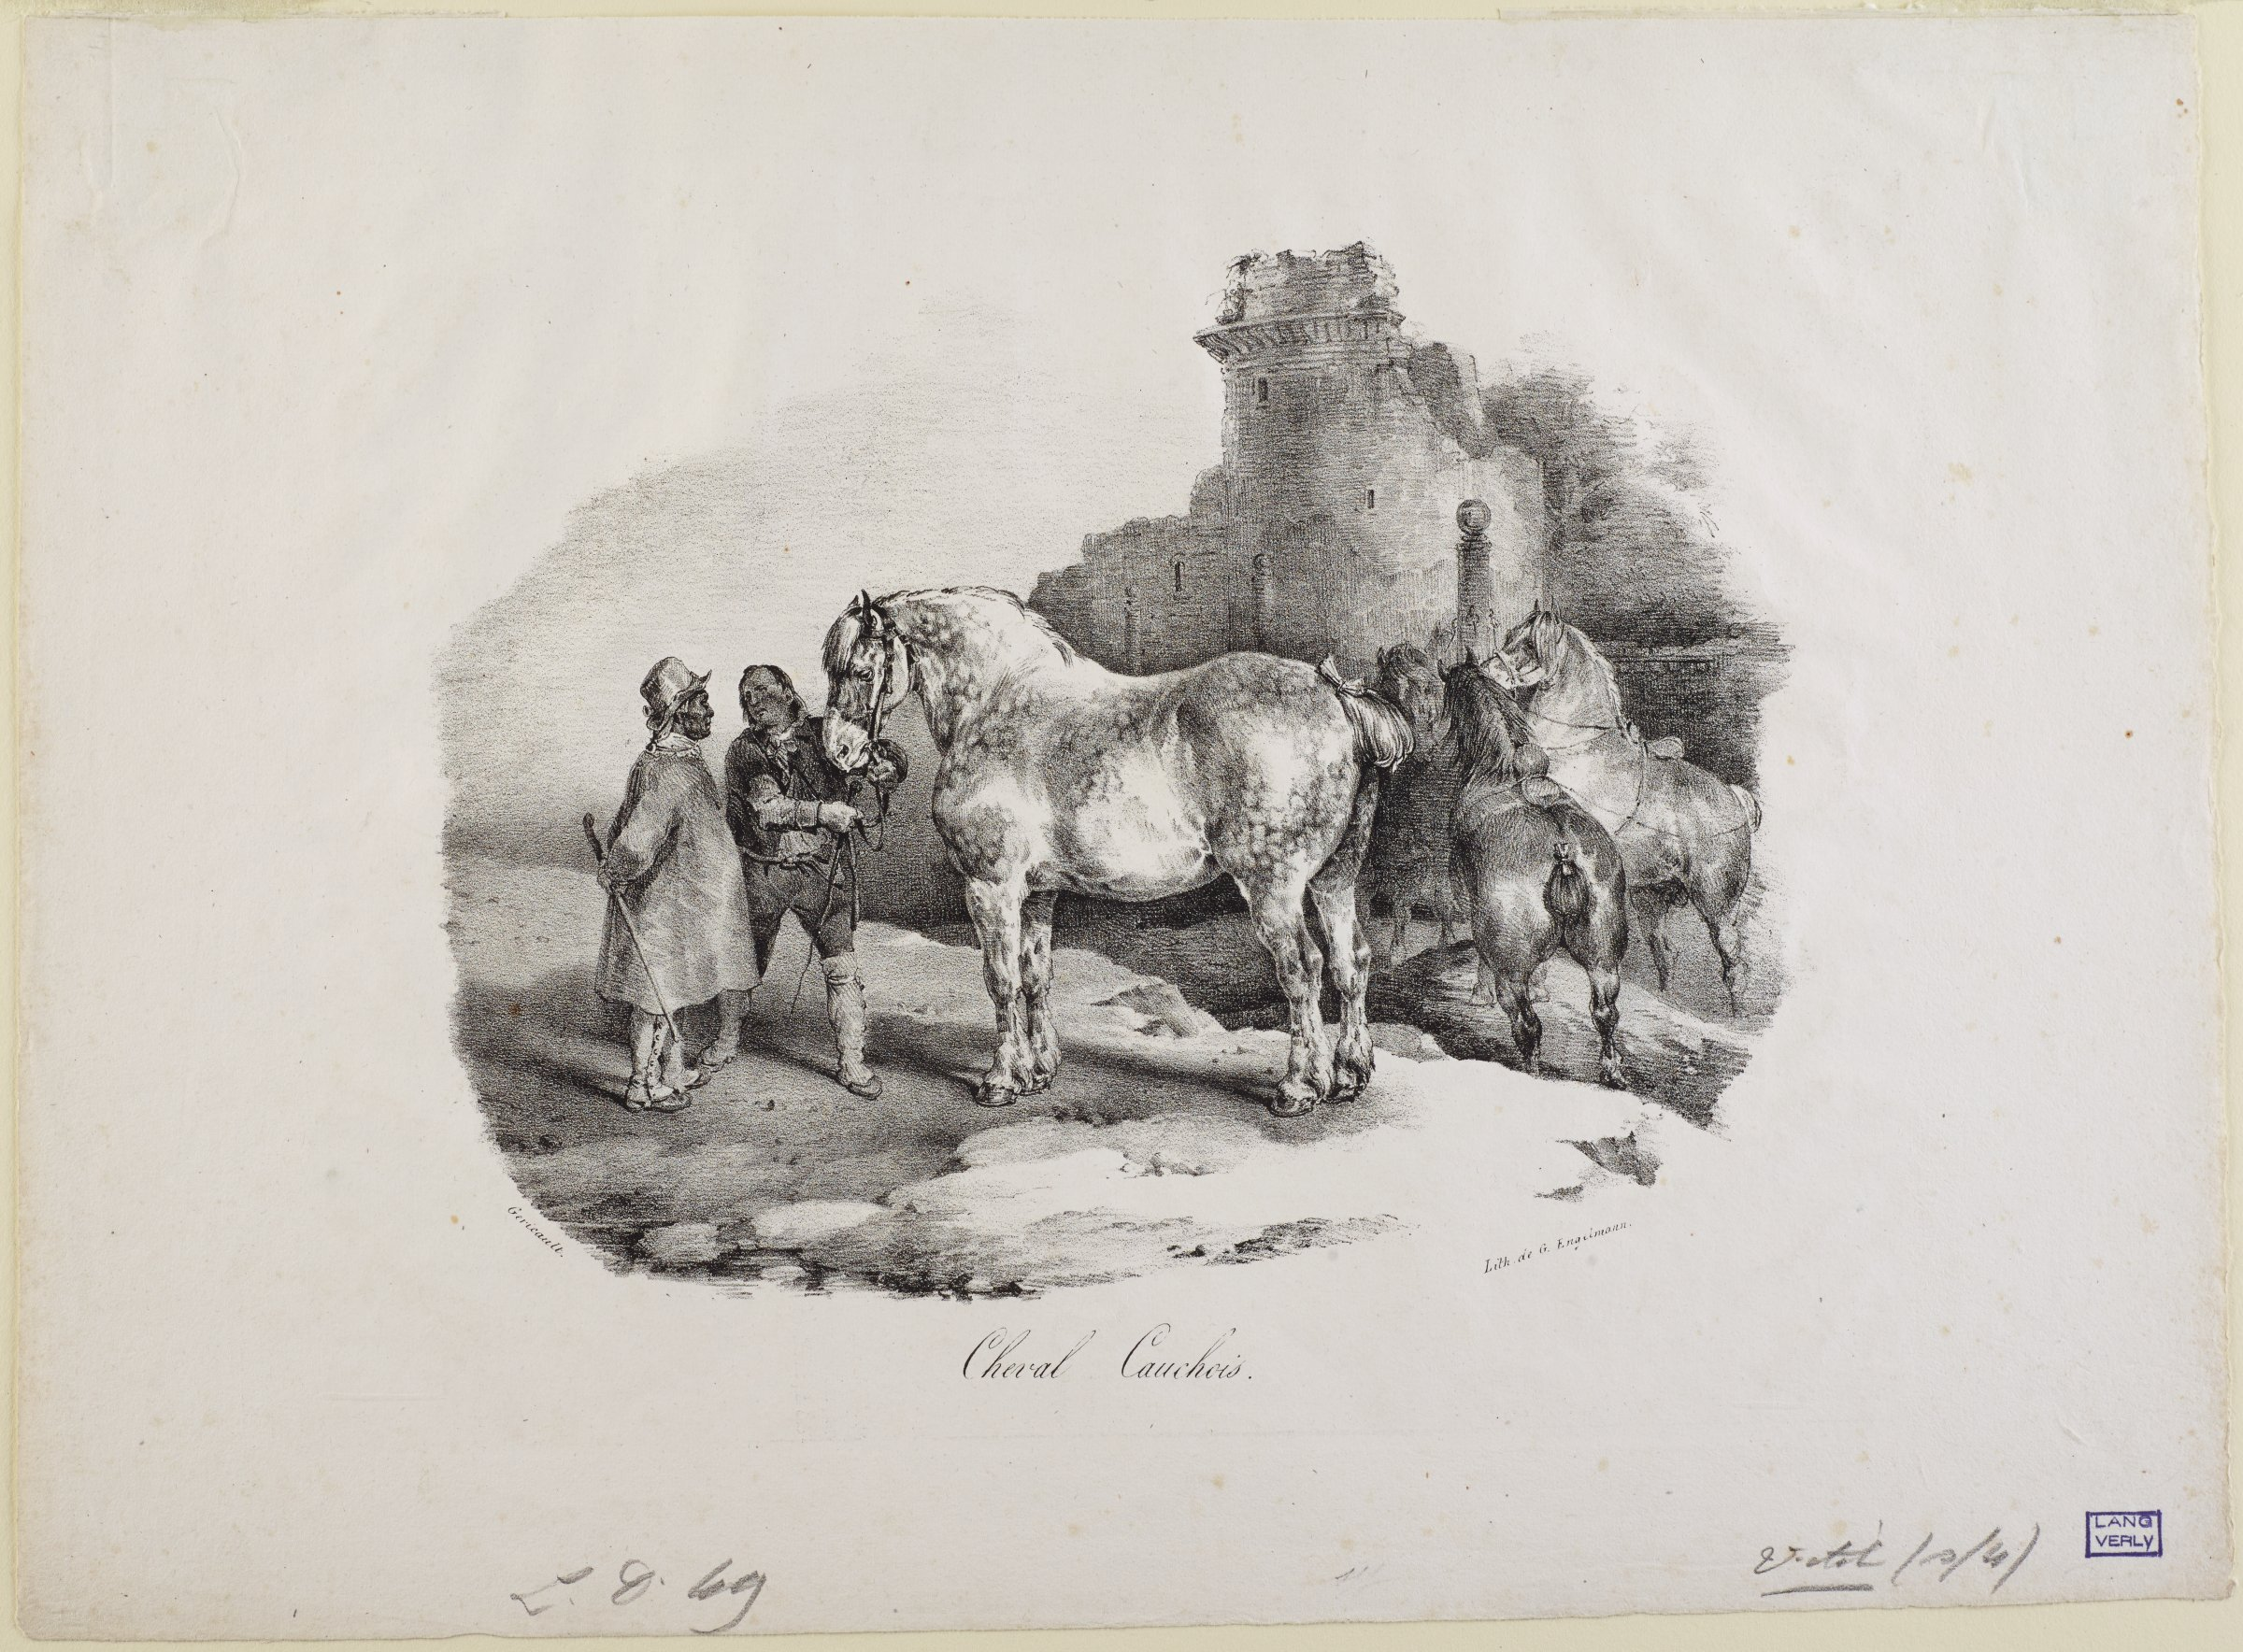 Two men stand conversing on the left. One man holds the reigns of a large horse in the center. On the right, three horses are gathered in the middleground. Ruins of building stand in the background.